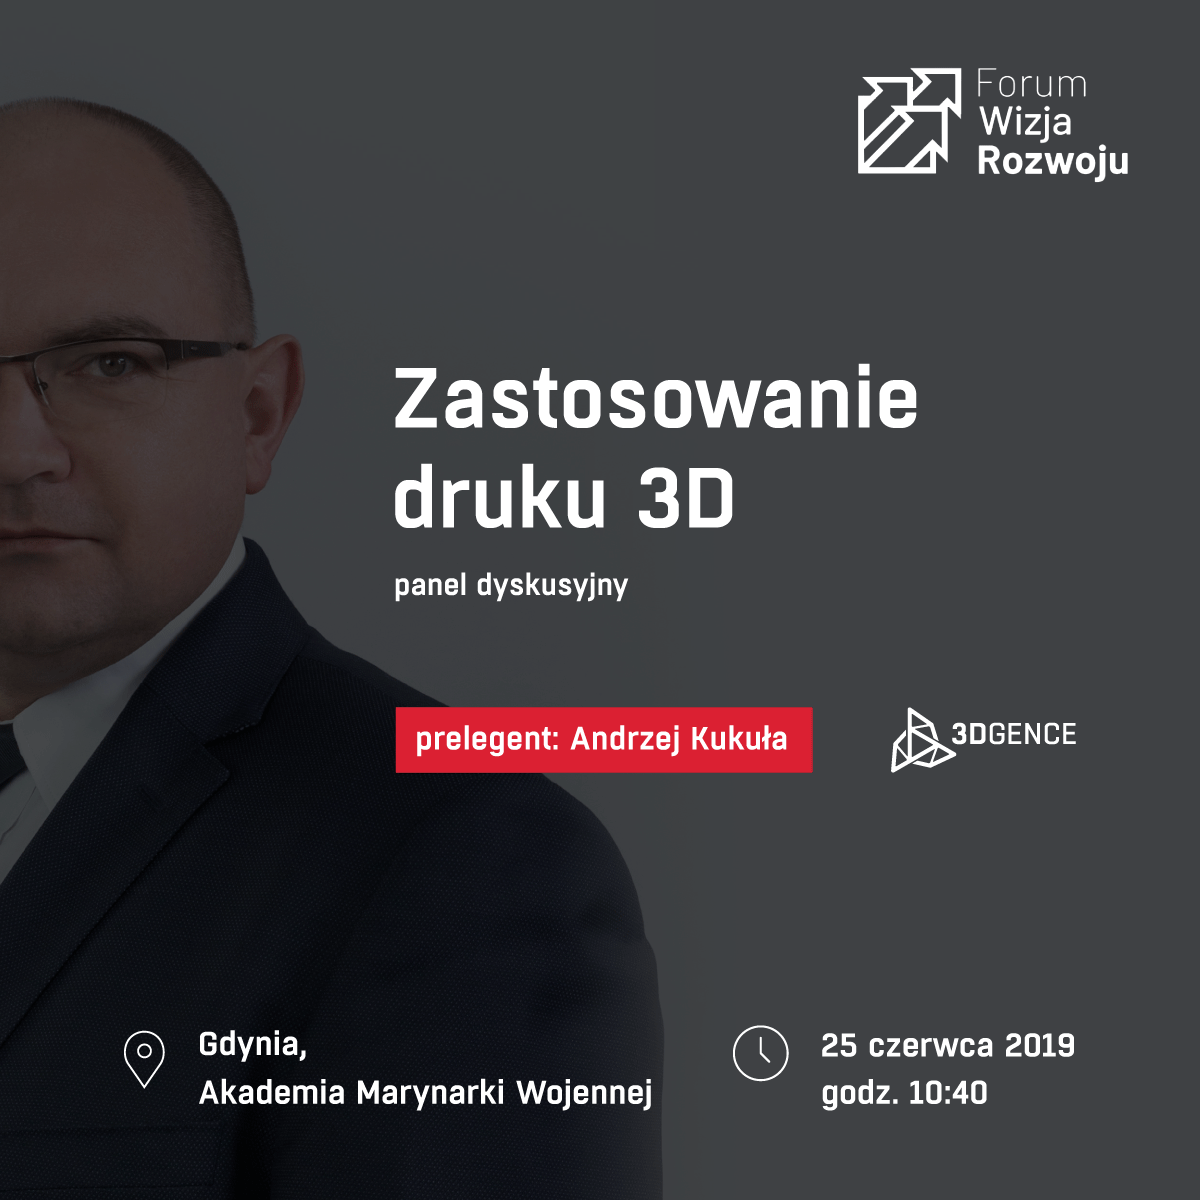 What are the benefits of implementing #3Dprinting technology in industrial enterprises? What changes will take place in the industry over the next few years? These questions will be answered by President of the Board #3DGence during  #WizjaRozwoju in #Gdynia.